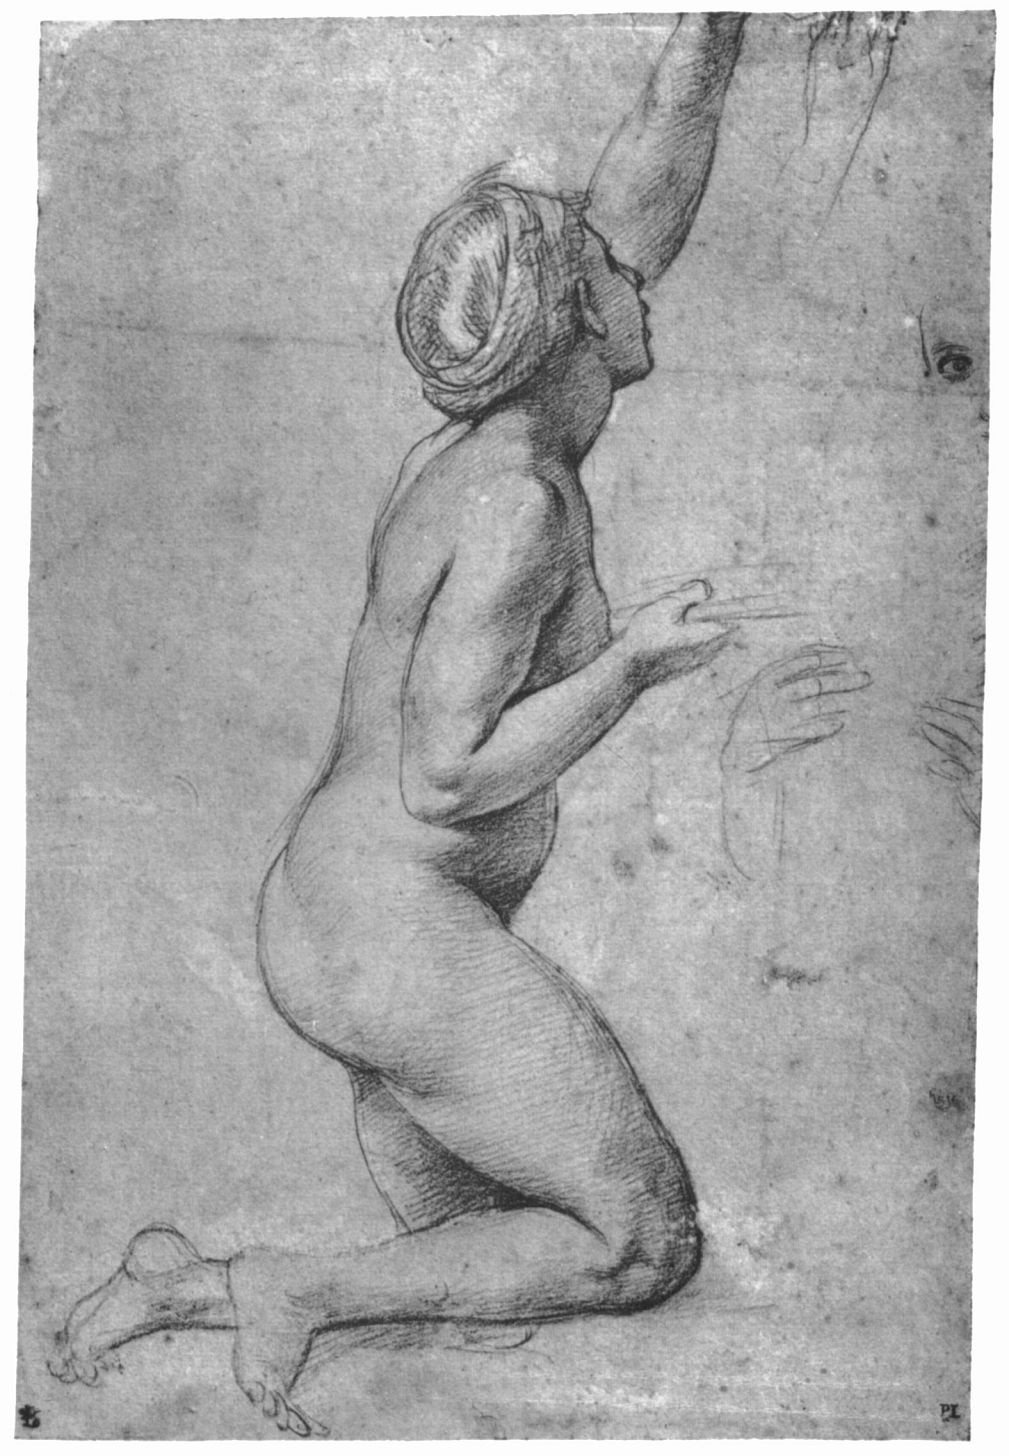 Raphael Santi. Study for the frescoes of the Loggia of psyche. Sketch Nude